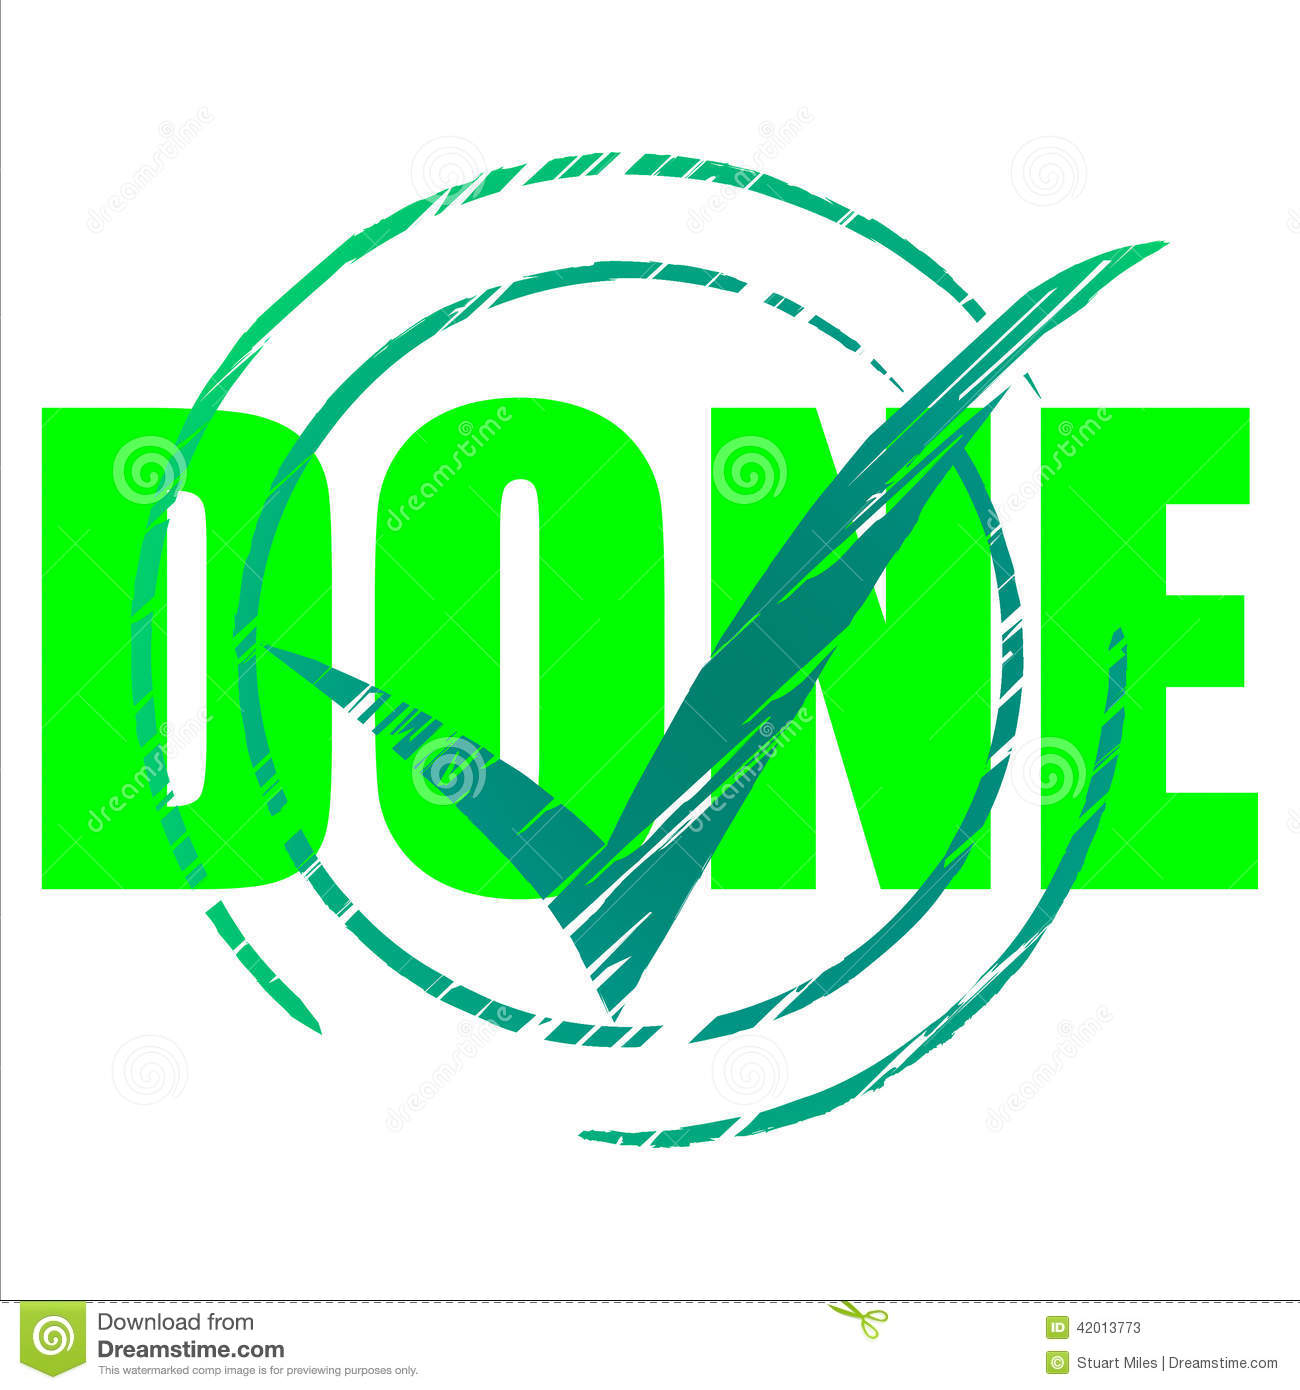 Yes Done Means Tick Symbol And Ok Stock Illustration - Image: 42013773